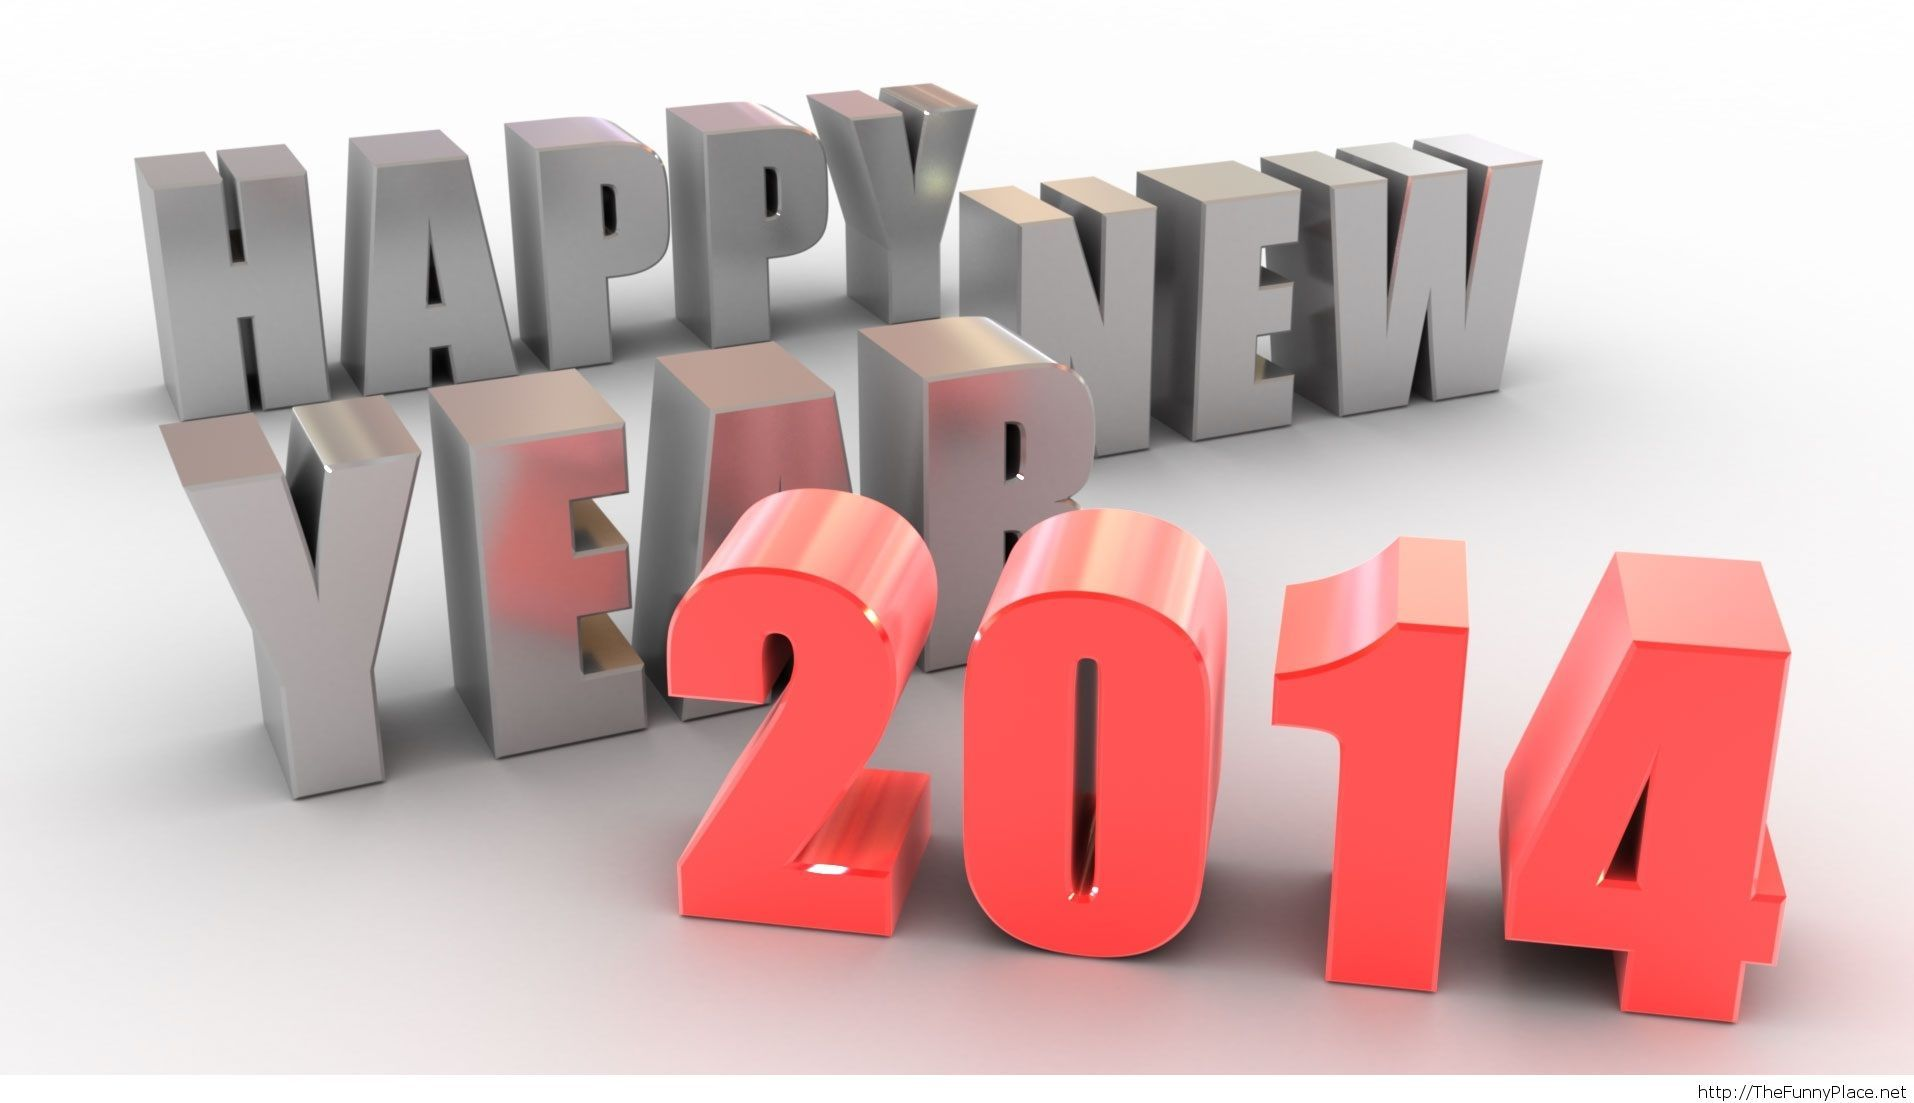 New year 2014 HD wallpaper image